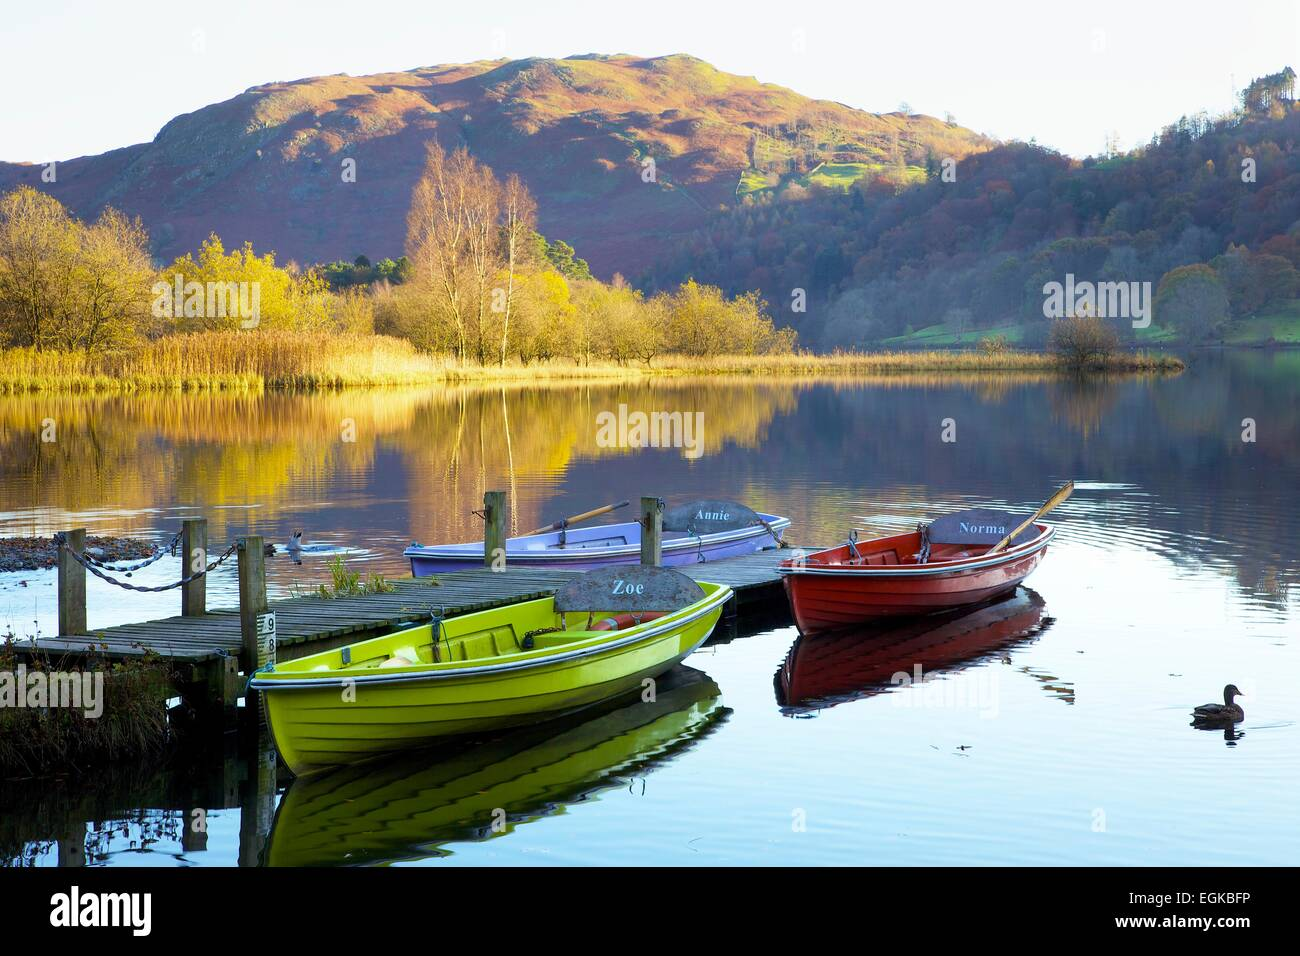 Boats moored on Grasmere, Lake District National Park, Cumbria, England, UK. - Stock Image